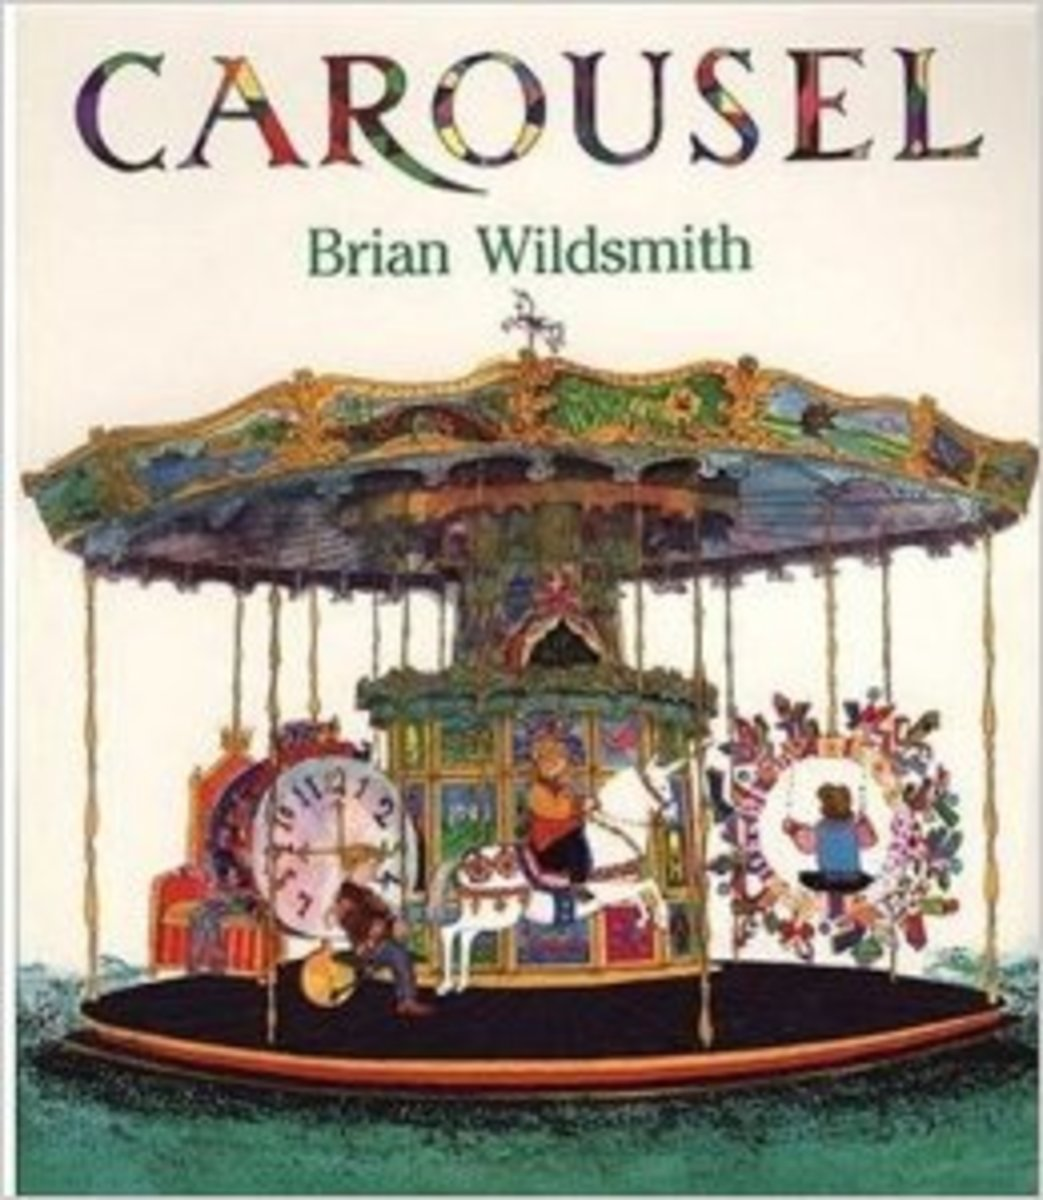 Carousel by Brian Wildsmith